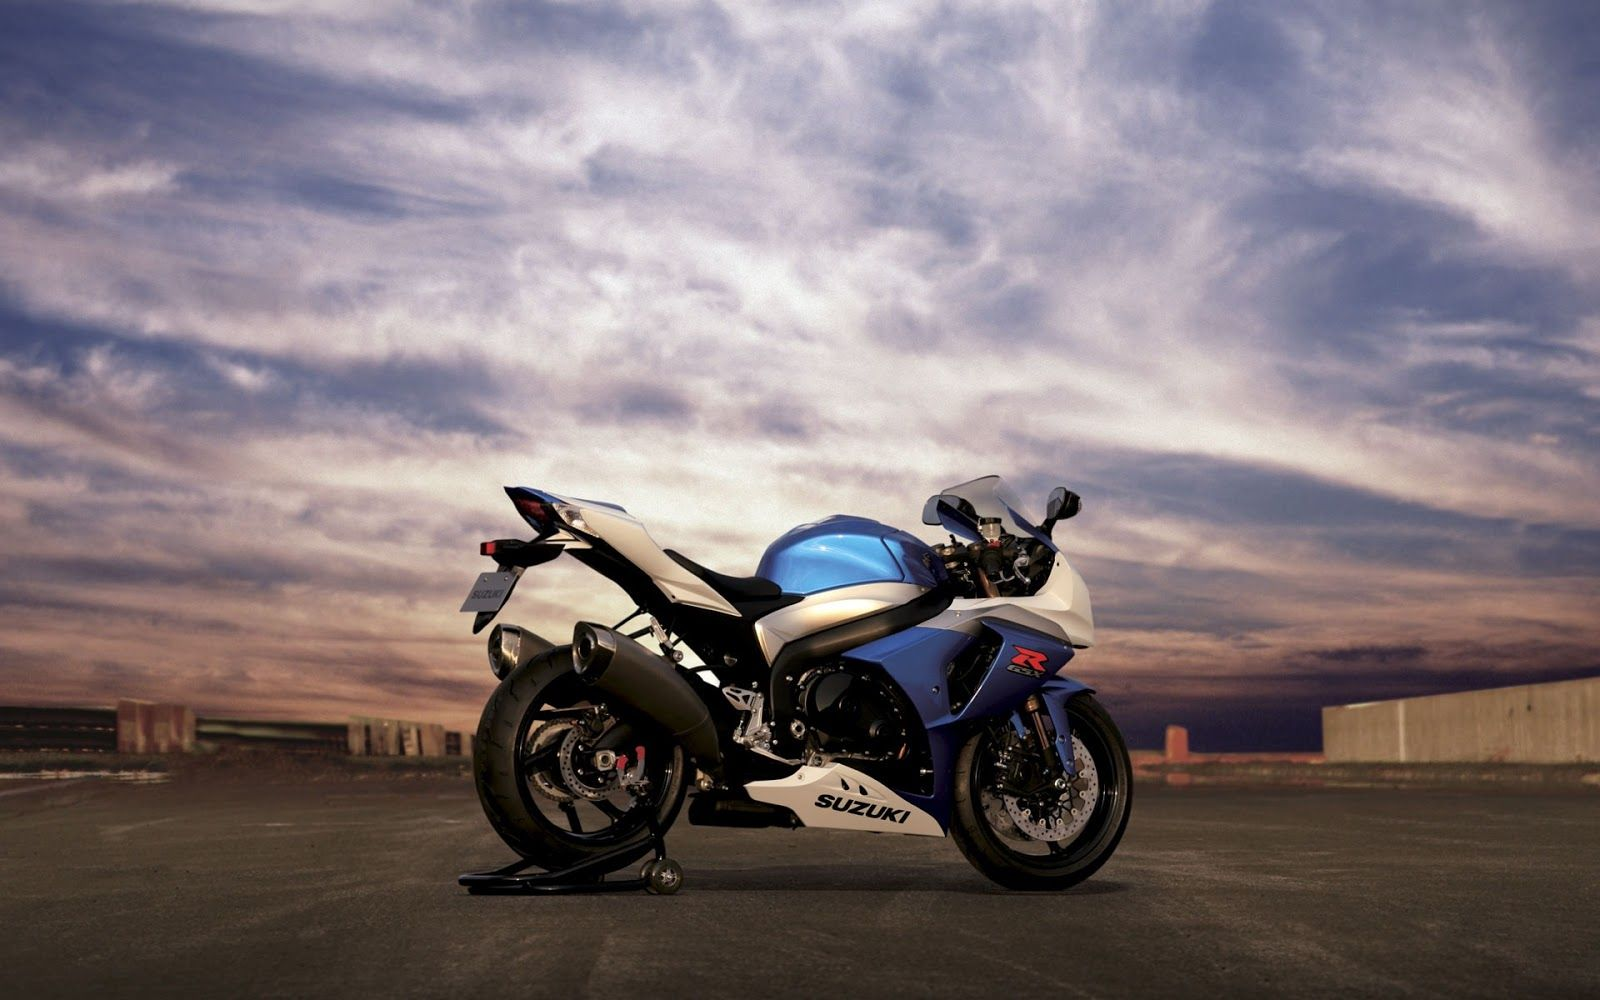 Motorcycle Wallpapers Full Hd Suzuki Bikes Motorcycle Wallpaper